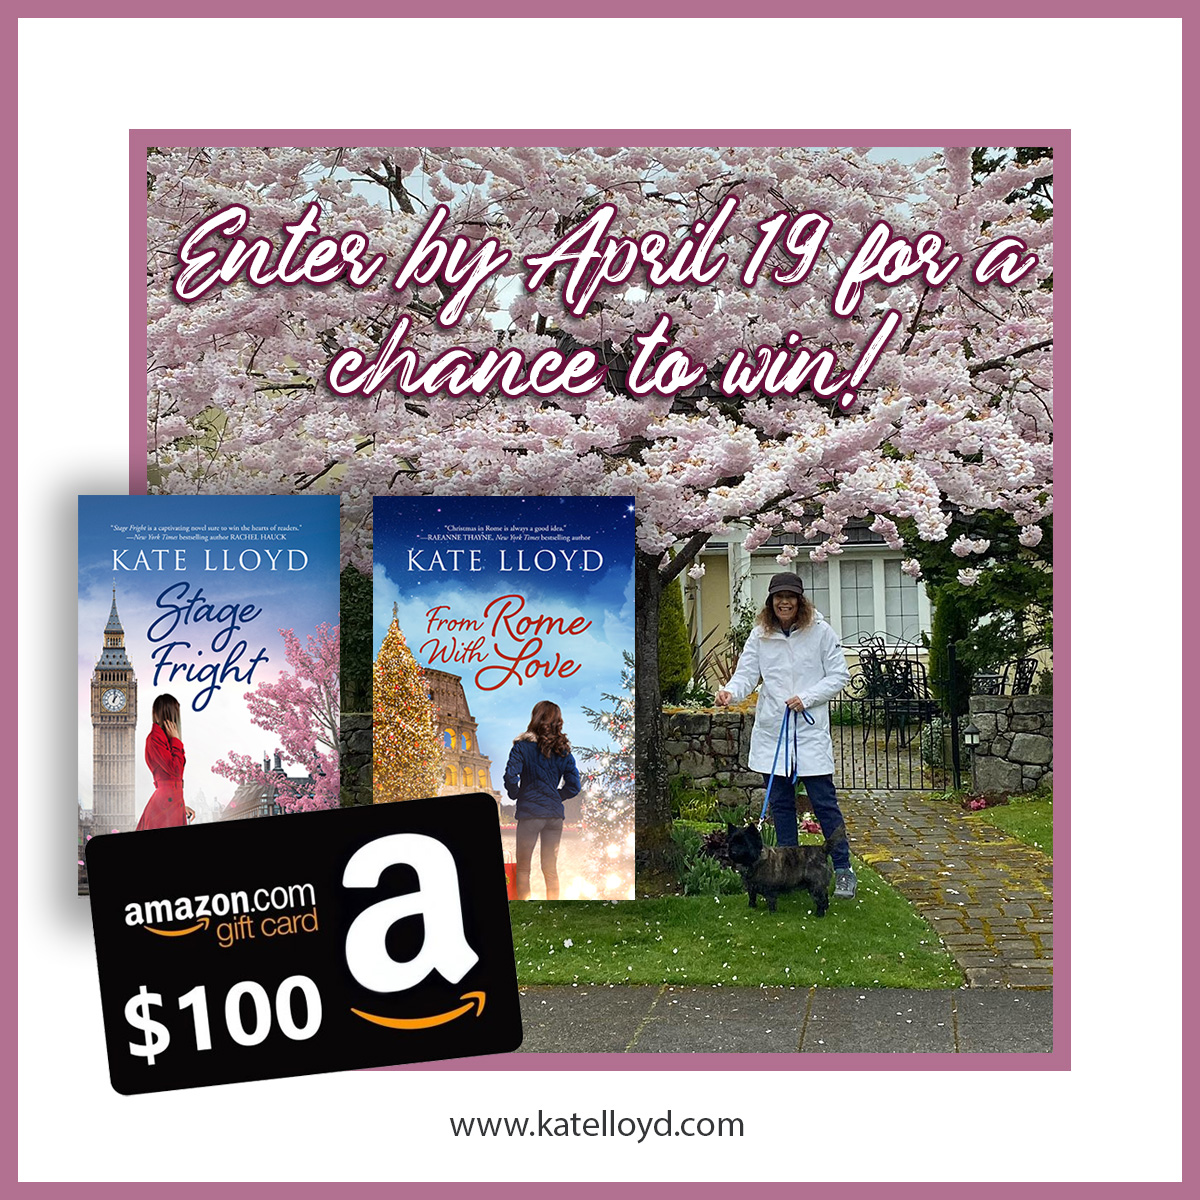 Enter Kate Lloyd's April 2021 Giveaway